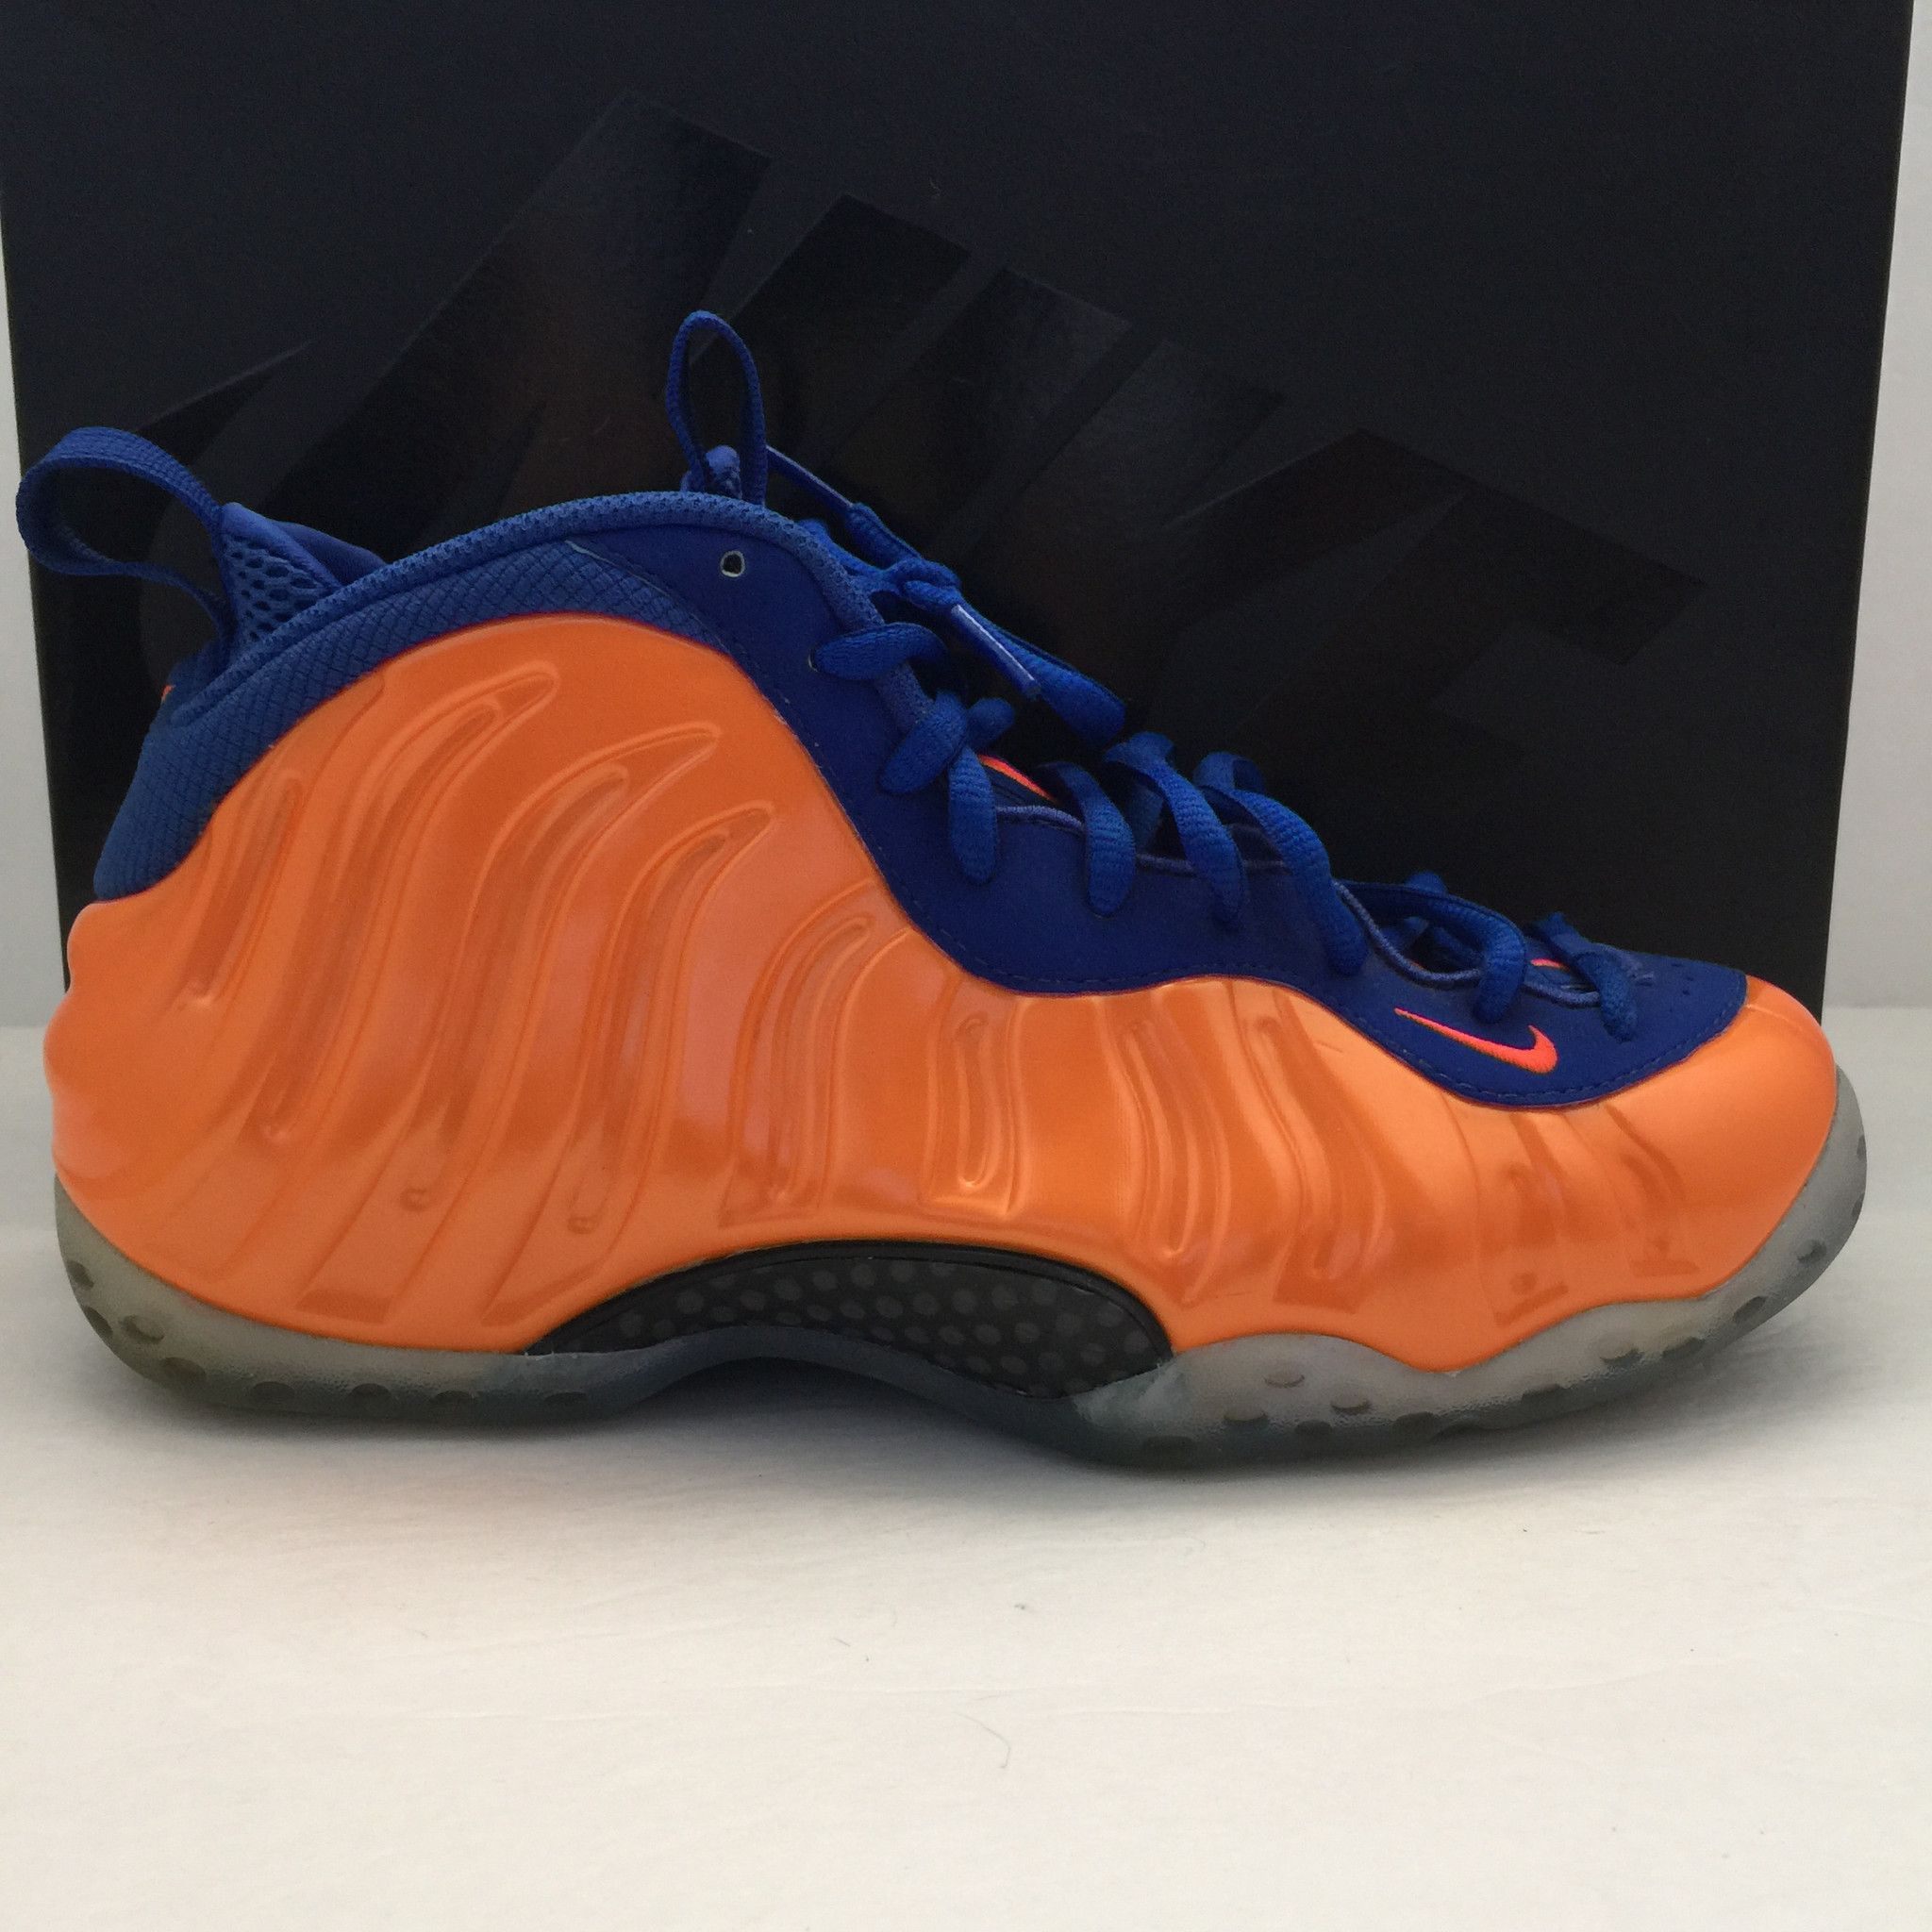 Nike Air Foamposite One Knicks Size 9